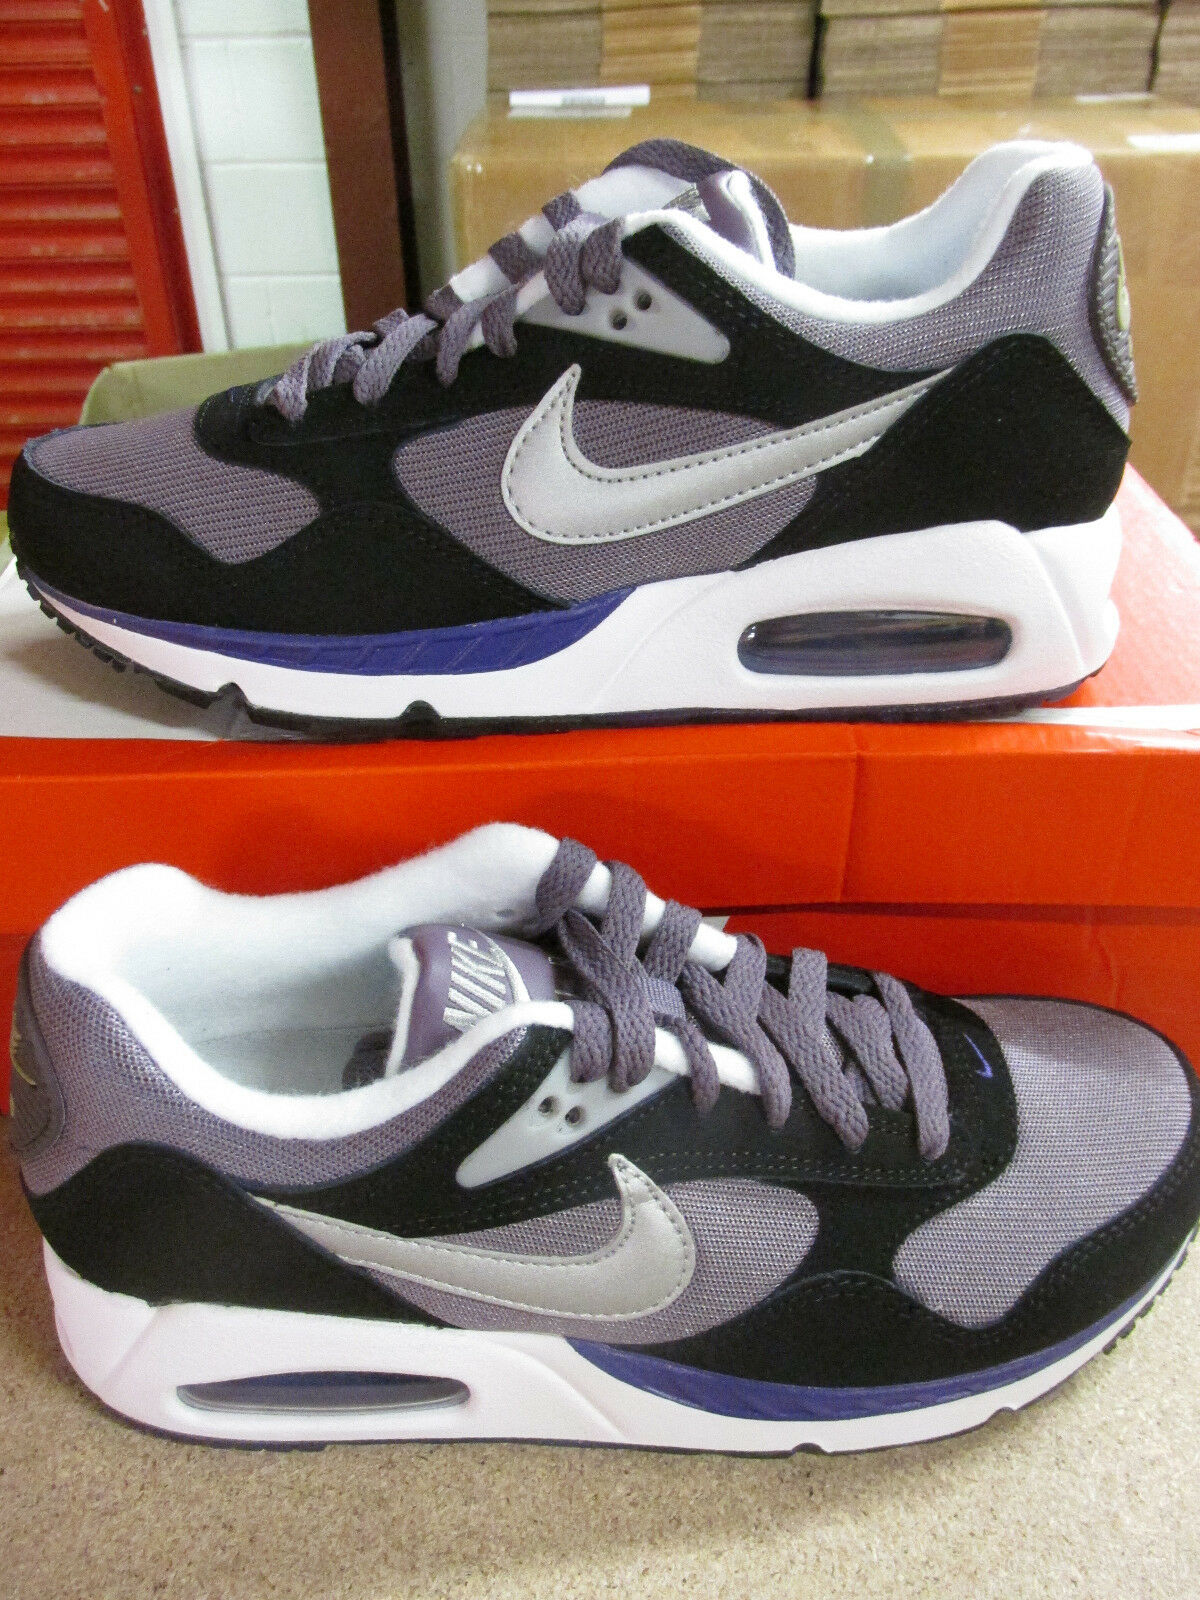 Nike Womens Air Max Correlate Running Trainers 511417 500 Sneakers Shoes